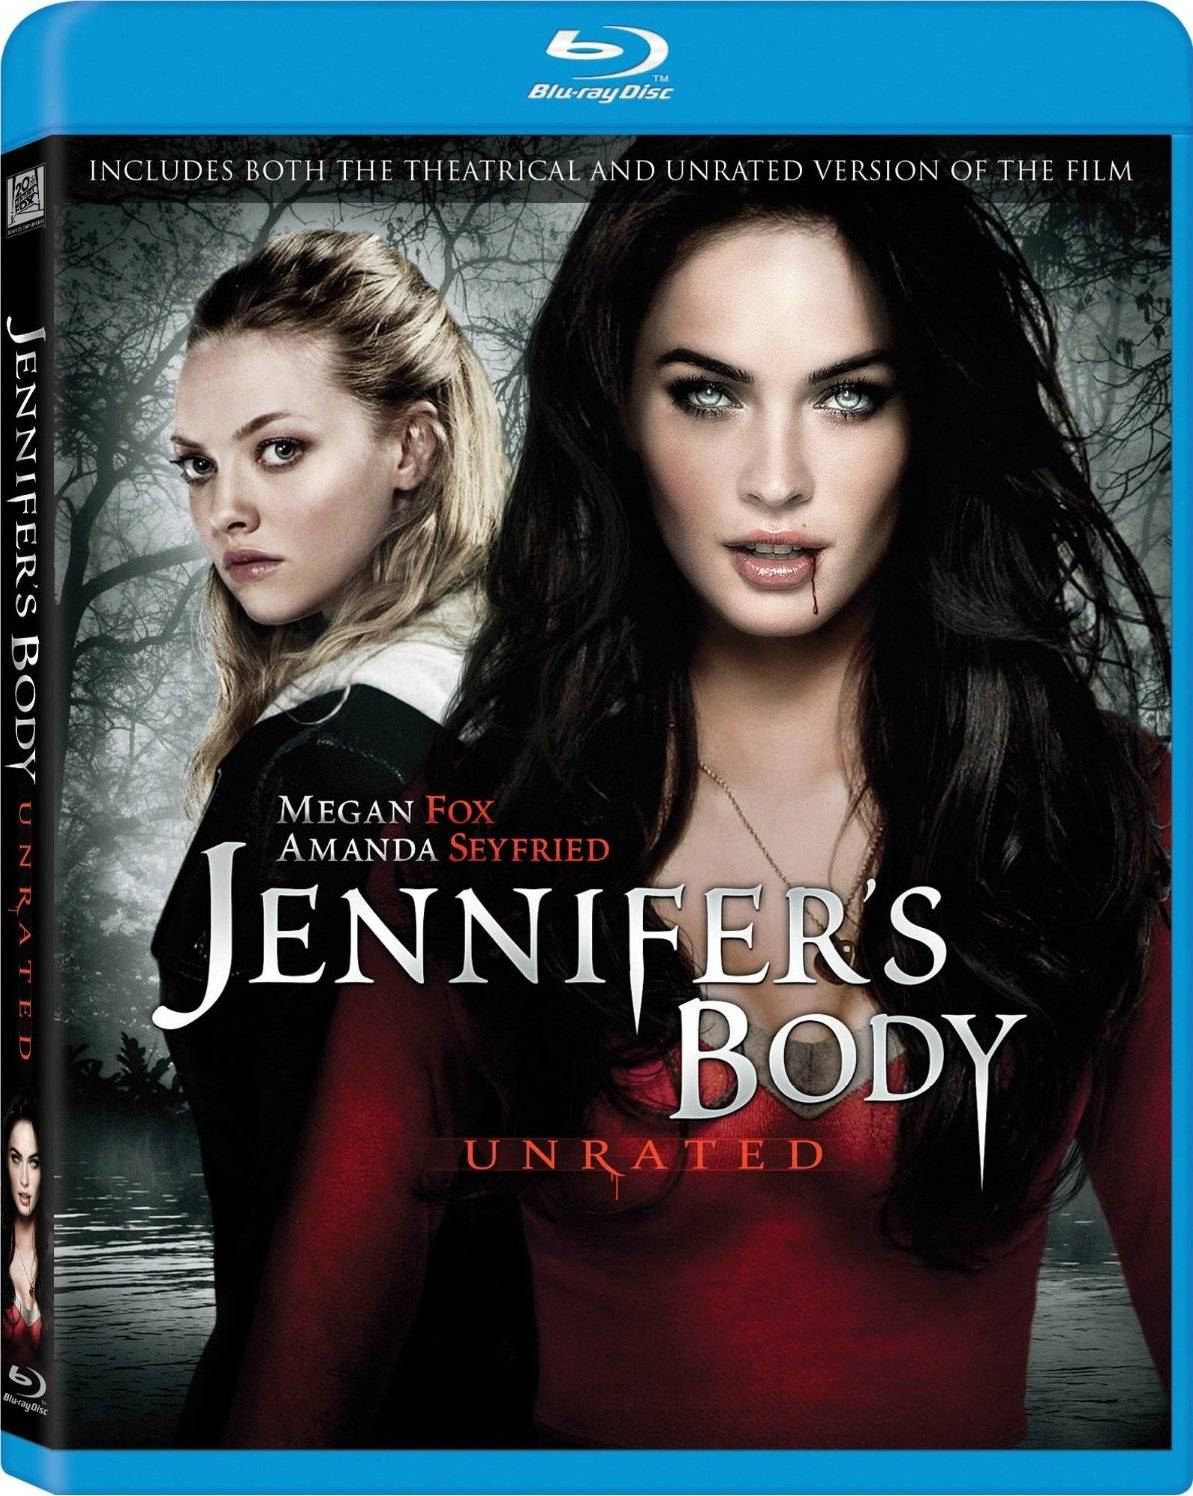 Jennifer's Body (2009) [Unrated] [Updated]